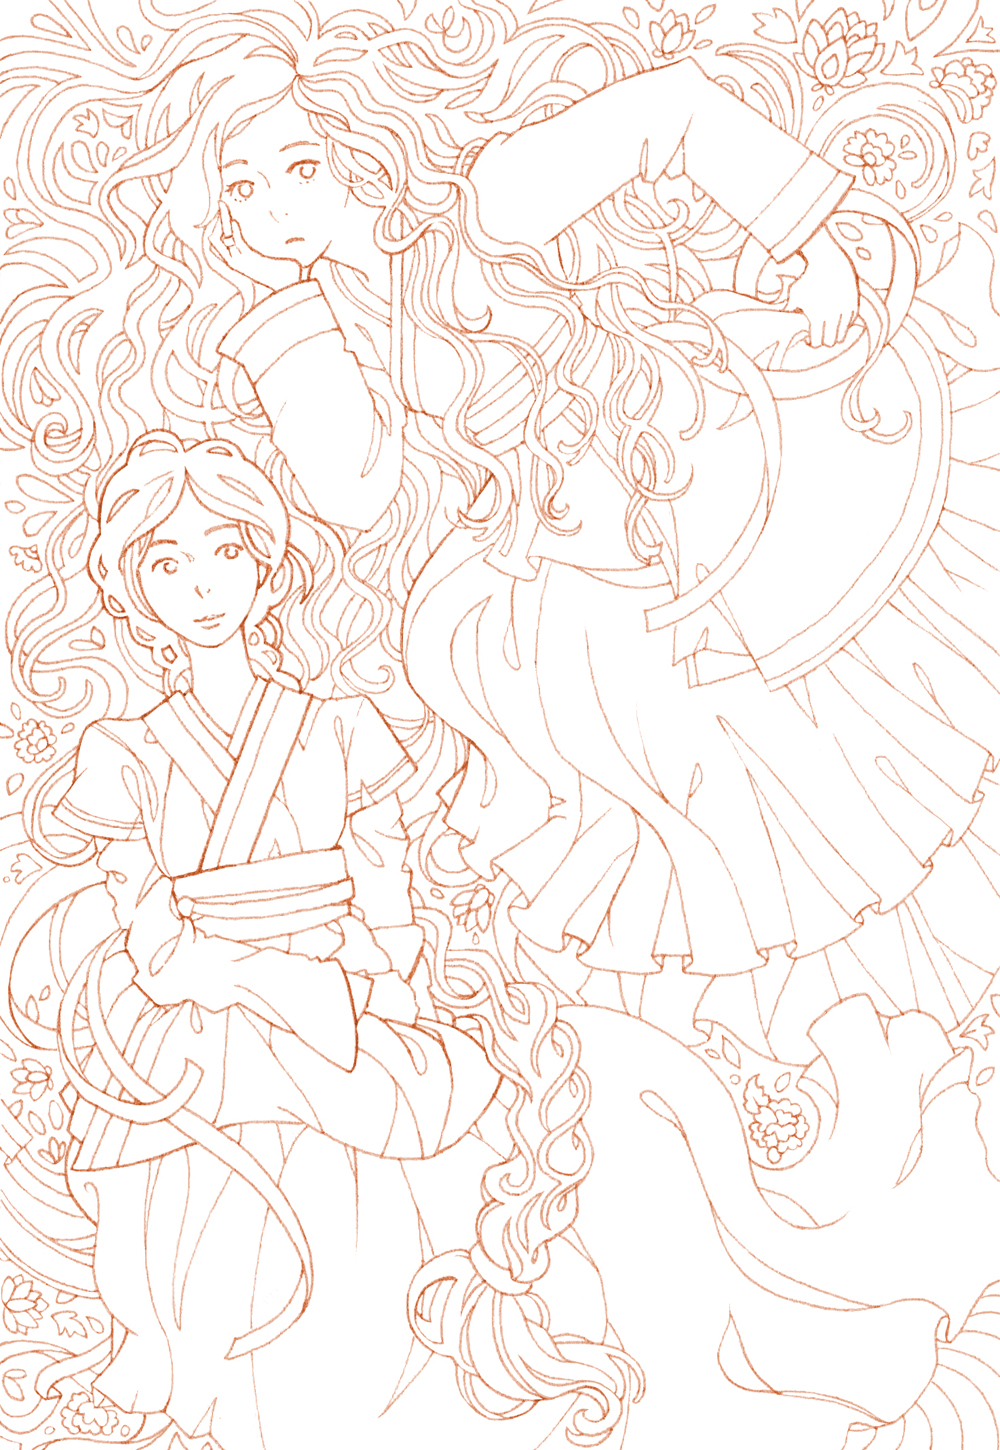 Hanbok girls coloring page. Manga outlines for coloring, Korean traditional dress and patterns.